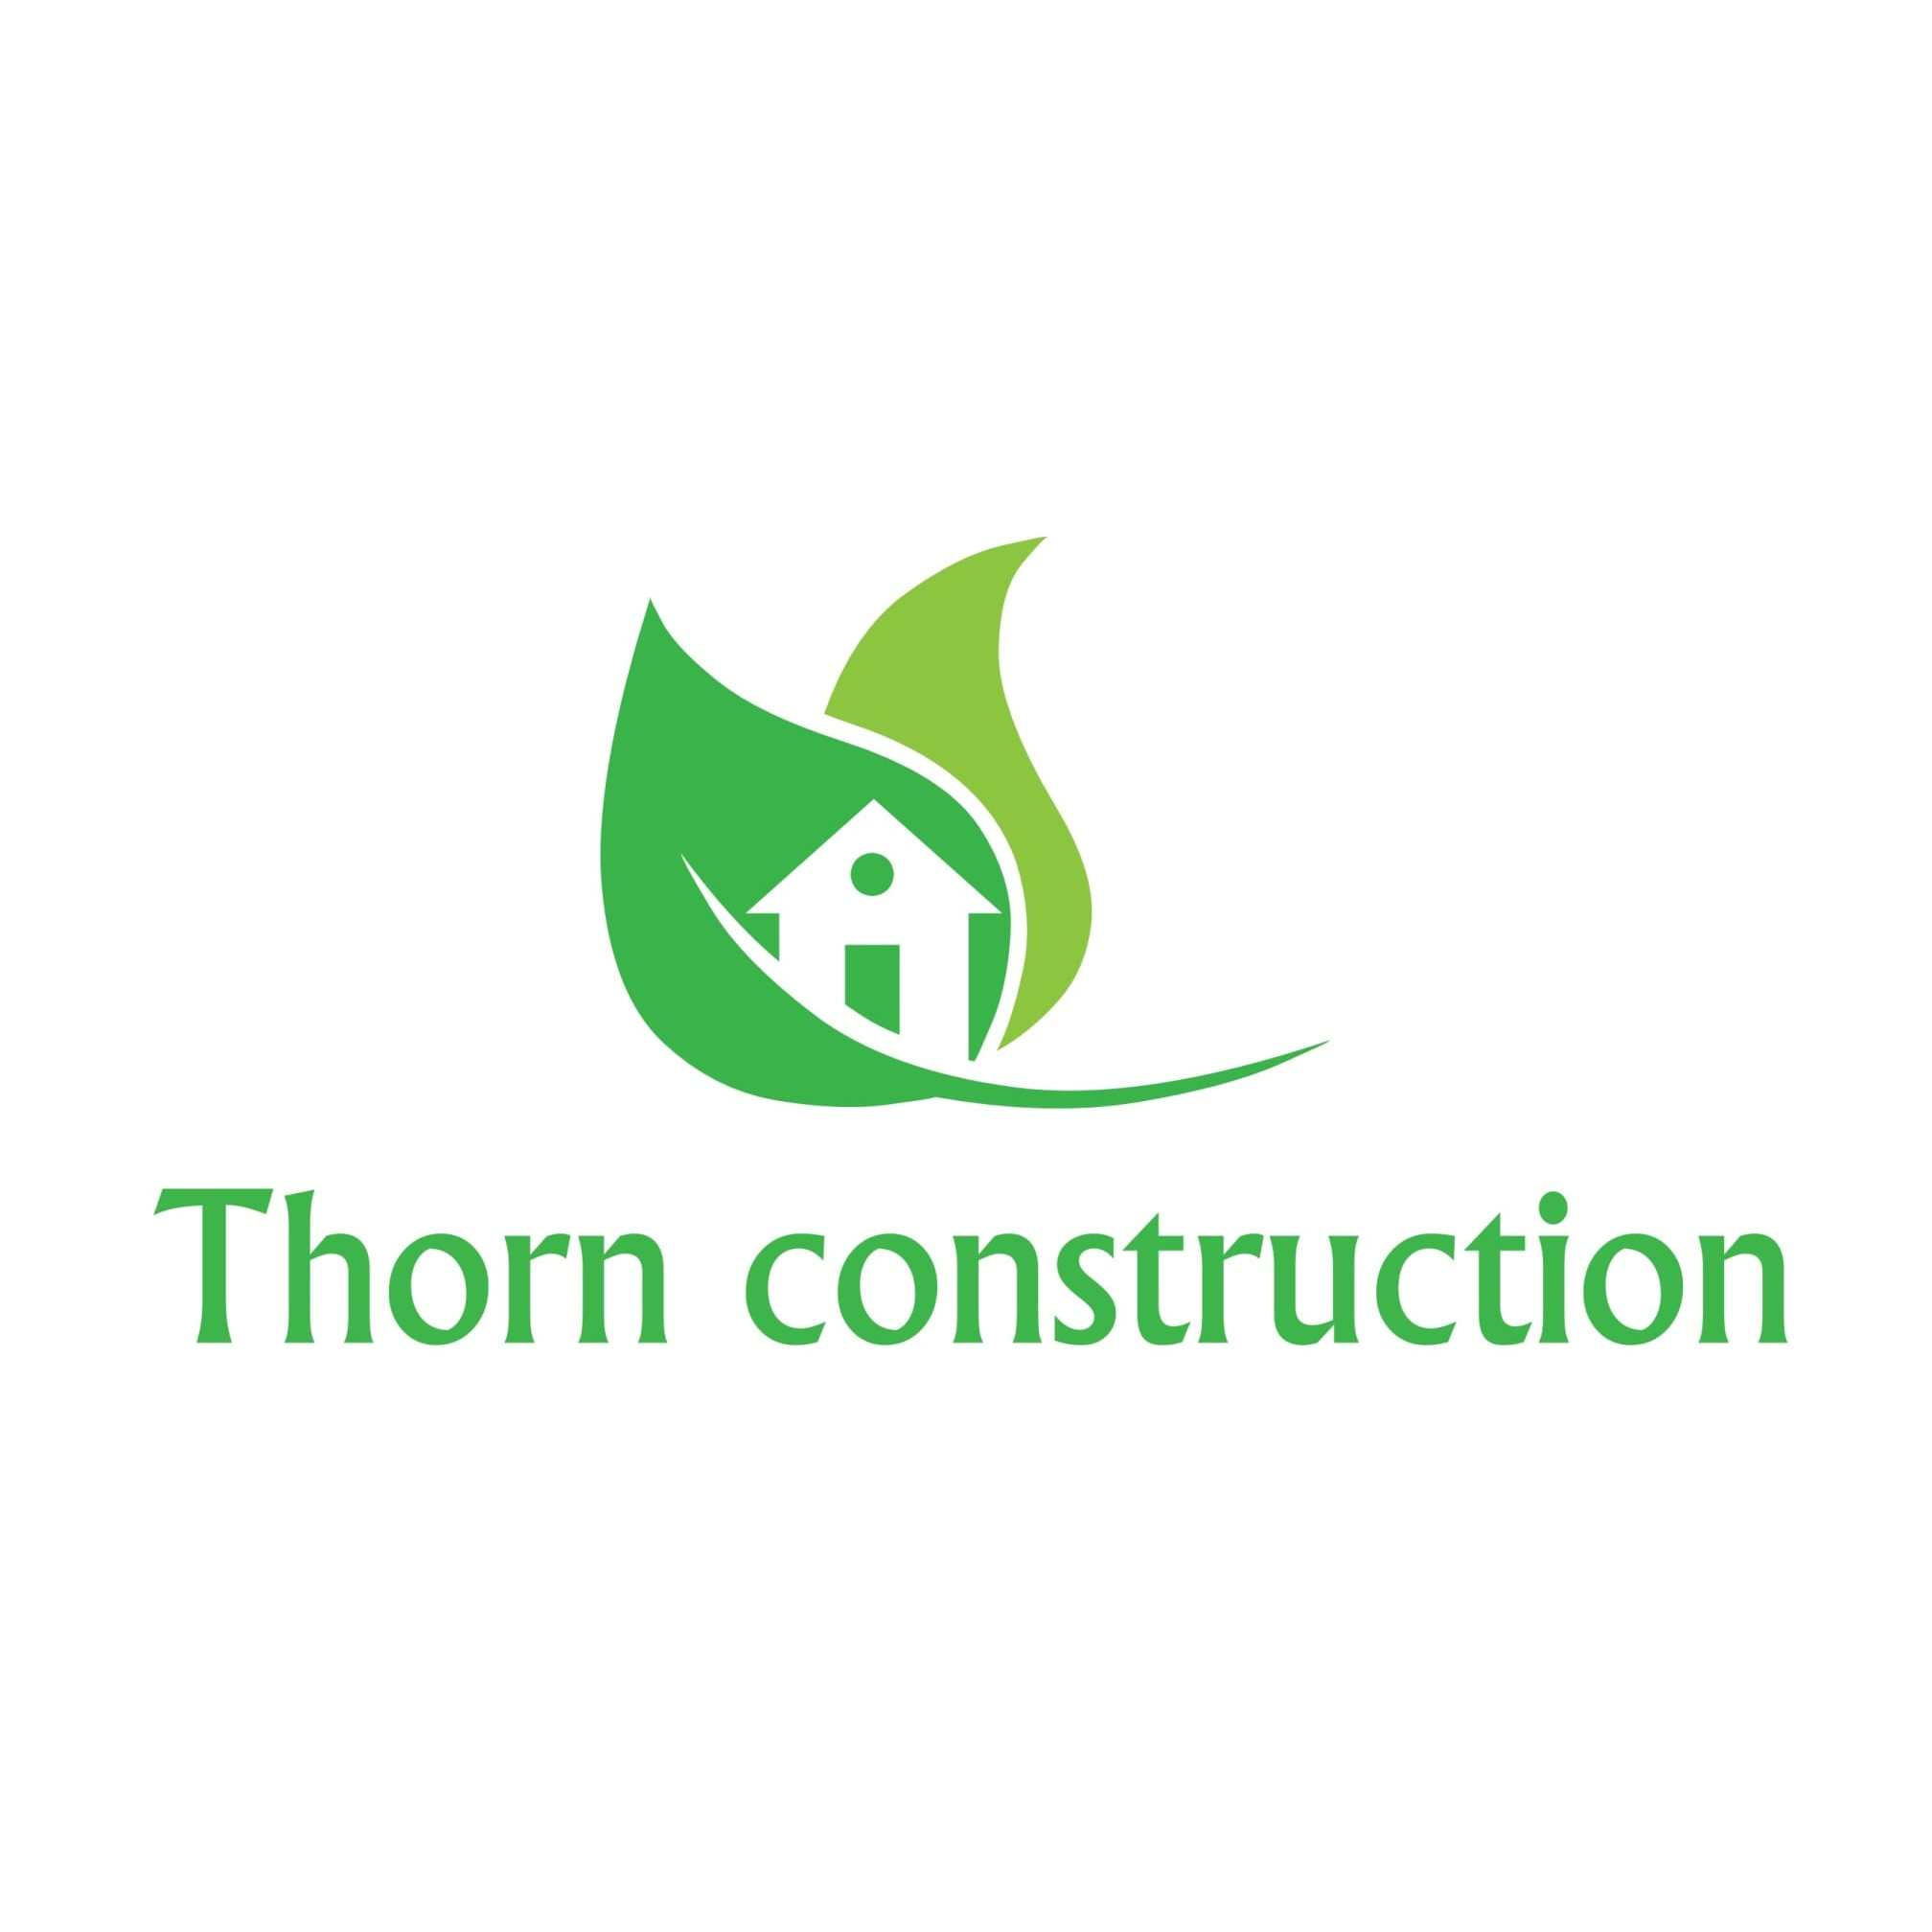 Thorn Construction - Dagenham, London RM9 6AB - 07594 761848 | ShowMeLocal.com